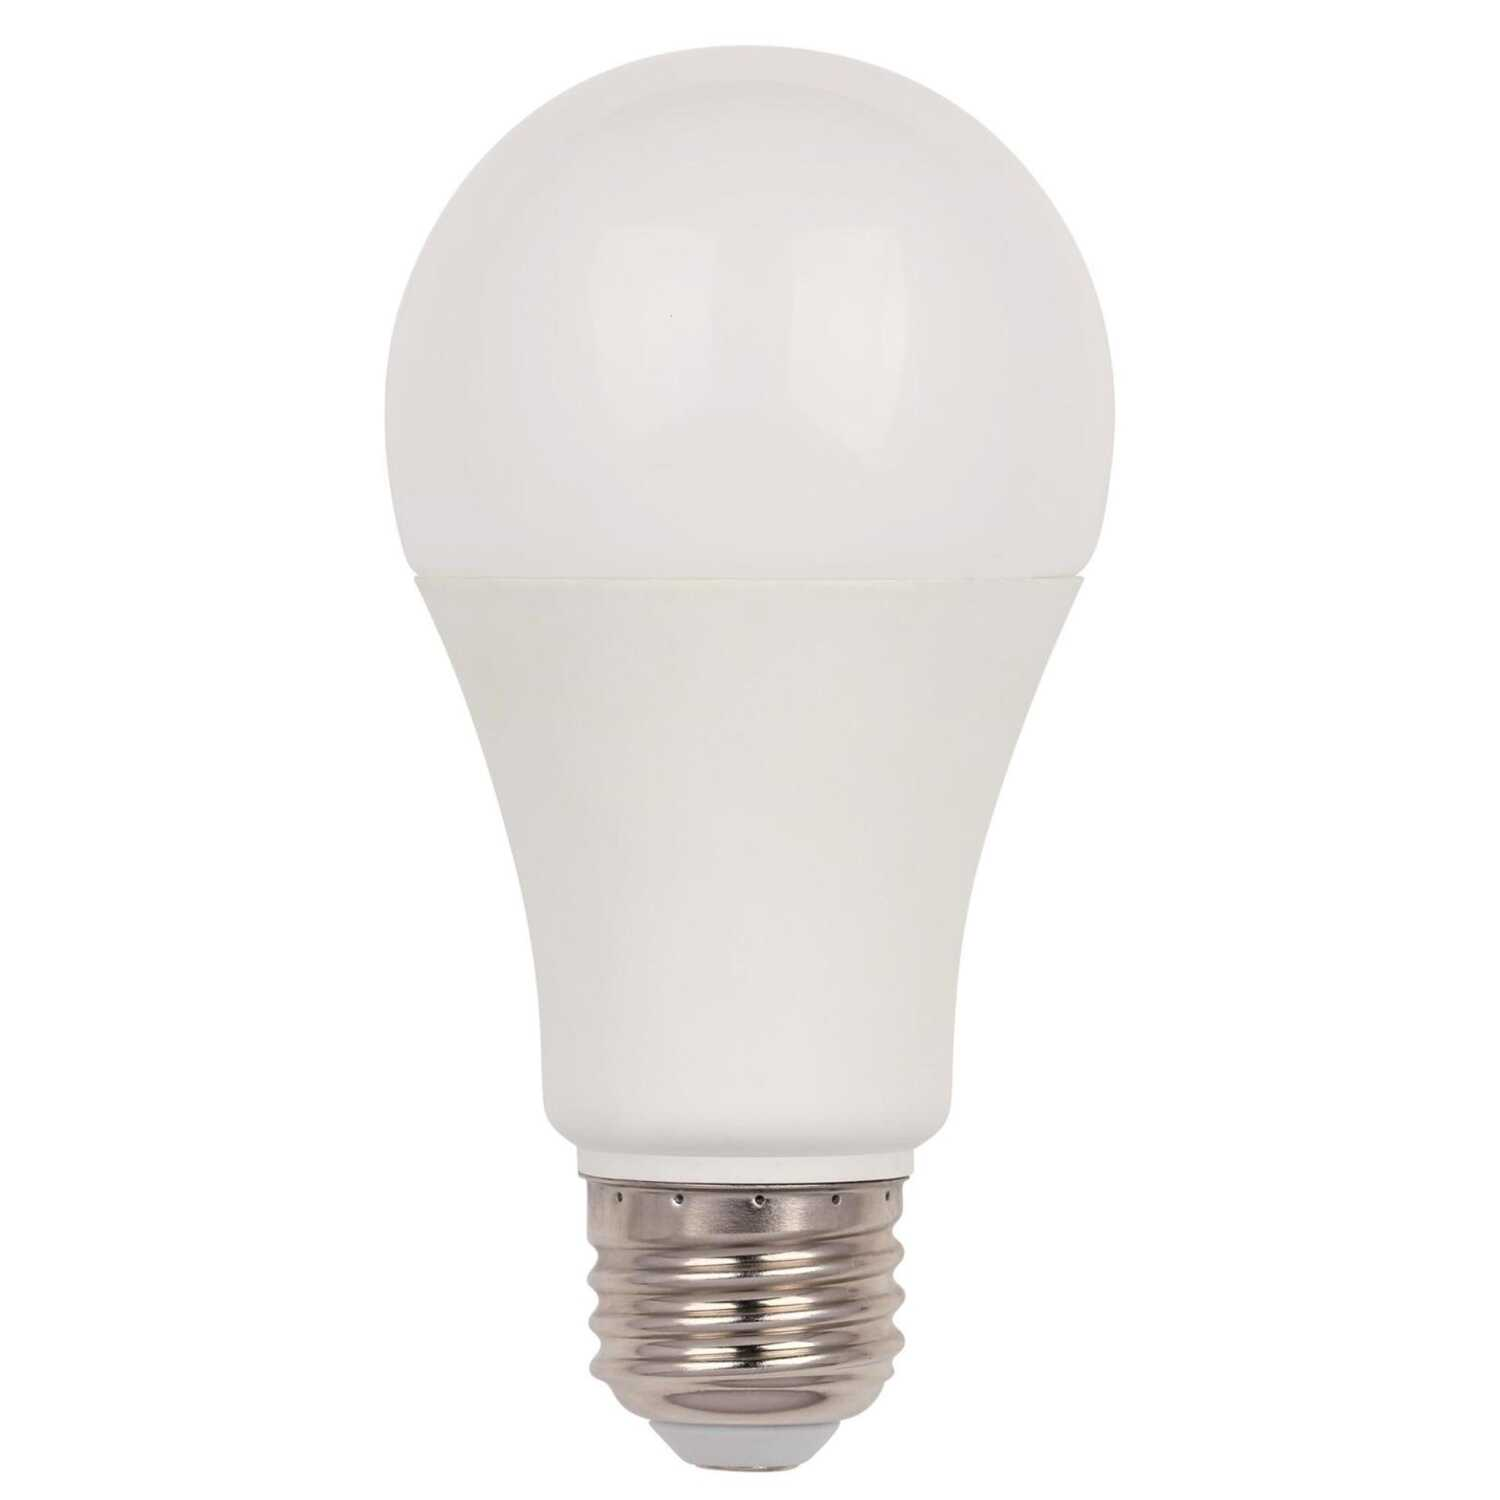 Westinghouse  A19  E26 (Medium)  LED Bulb  Daylight  100 Watt Equivalence 1 pk